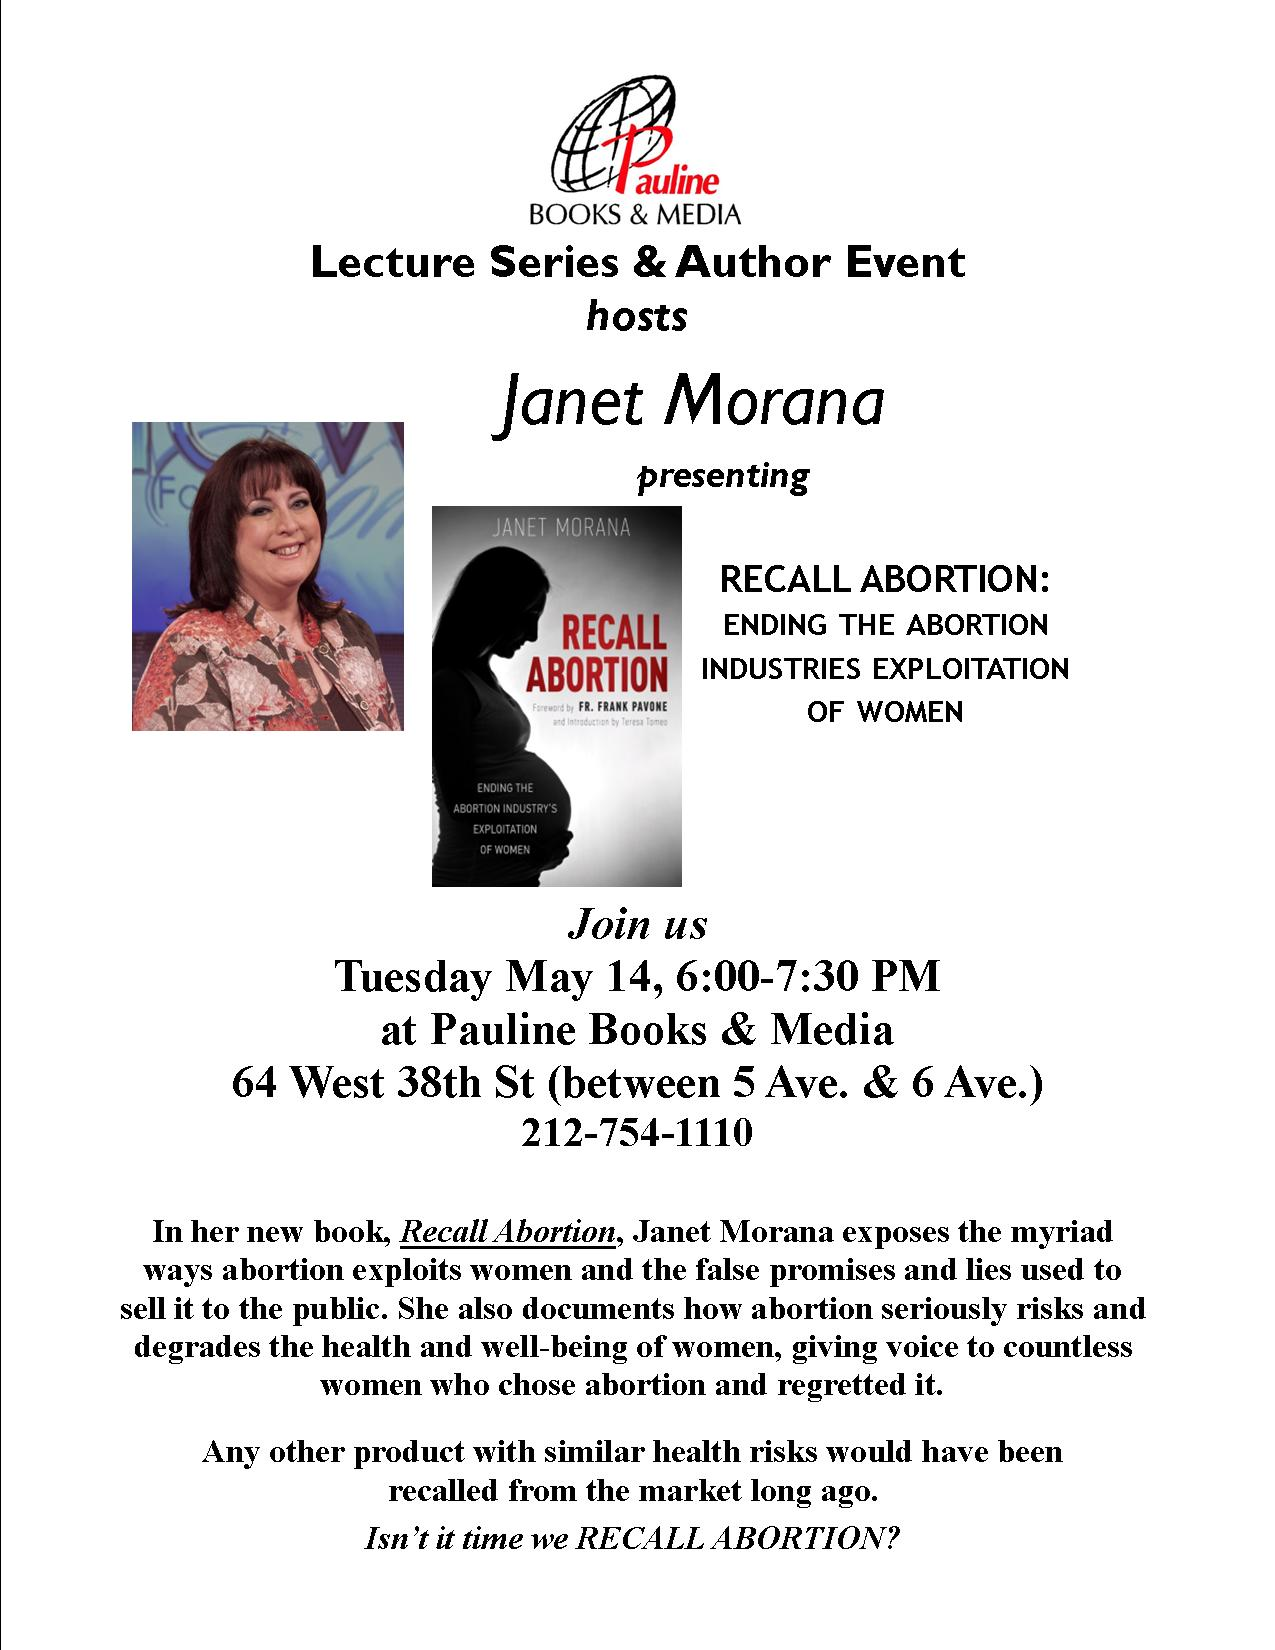 Author Event Recall Abortion